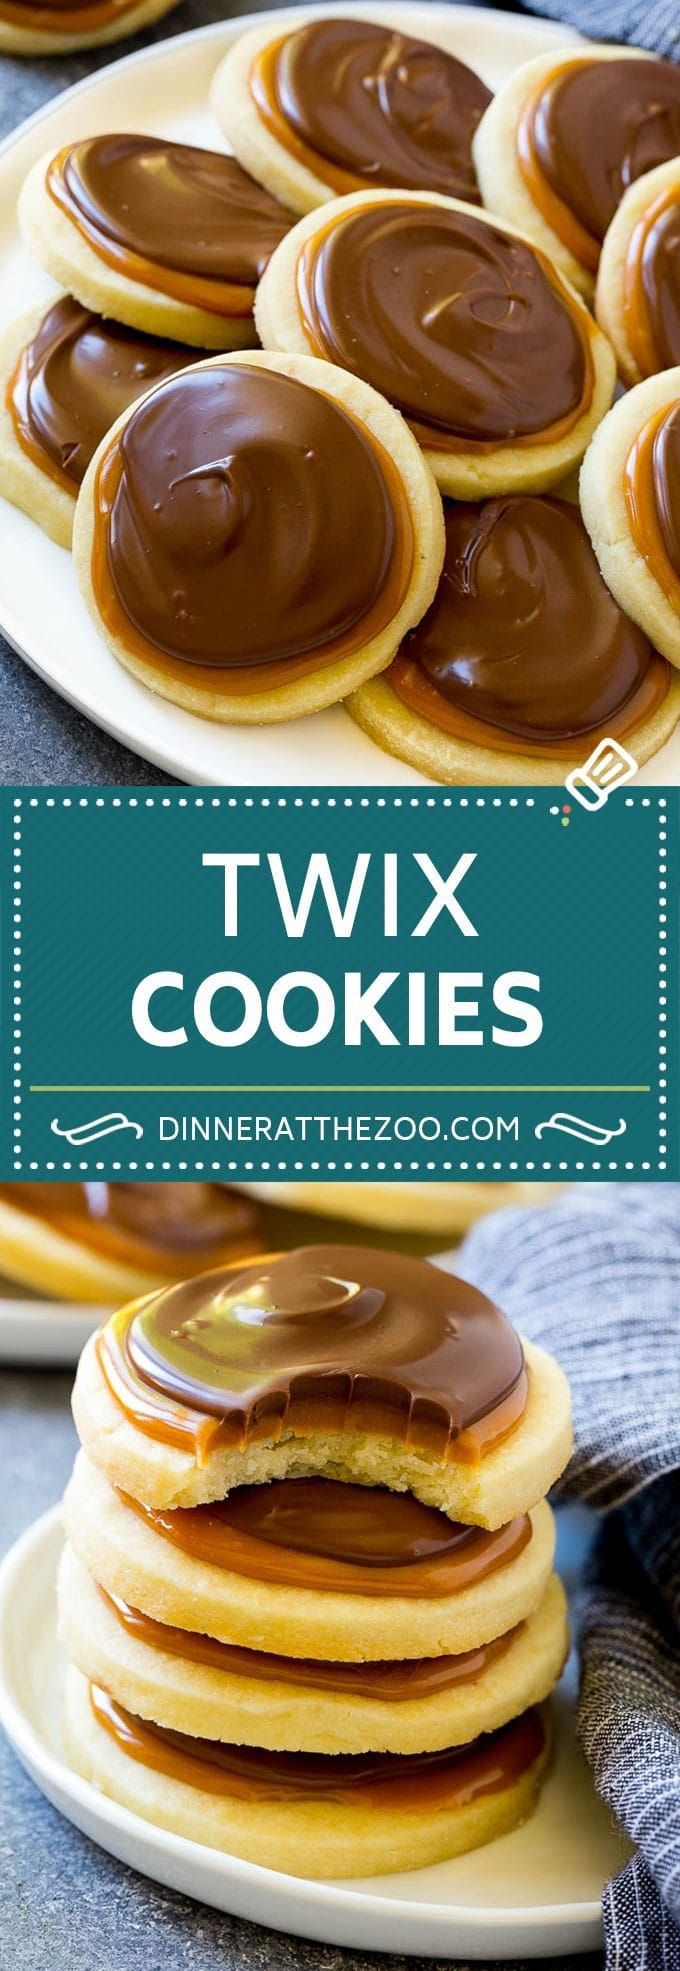 Twix Cookies - Dinner at the Zoo